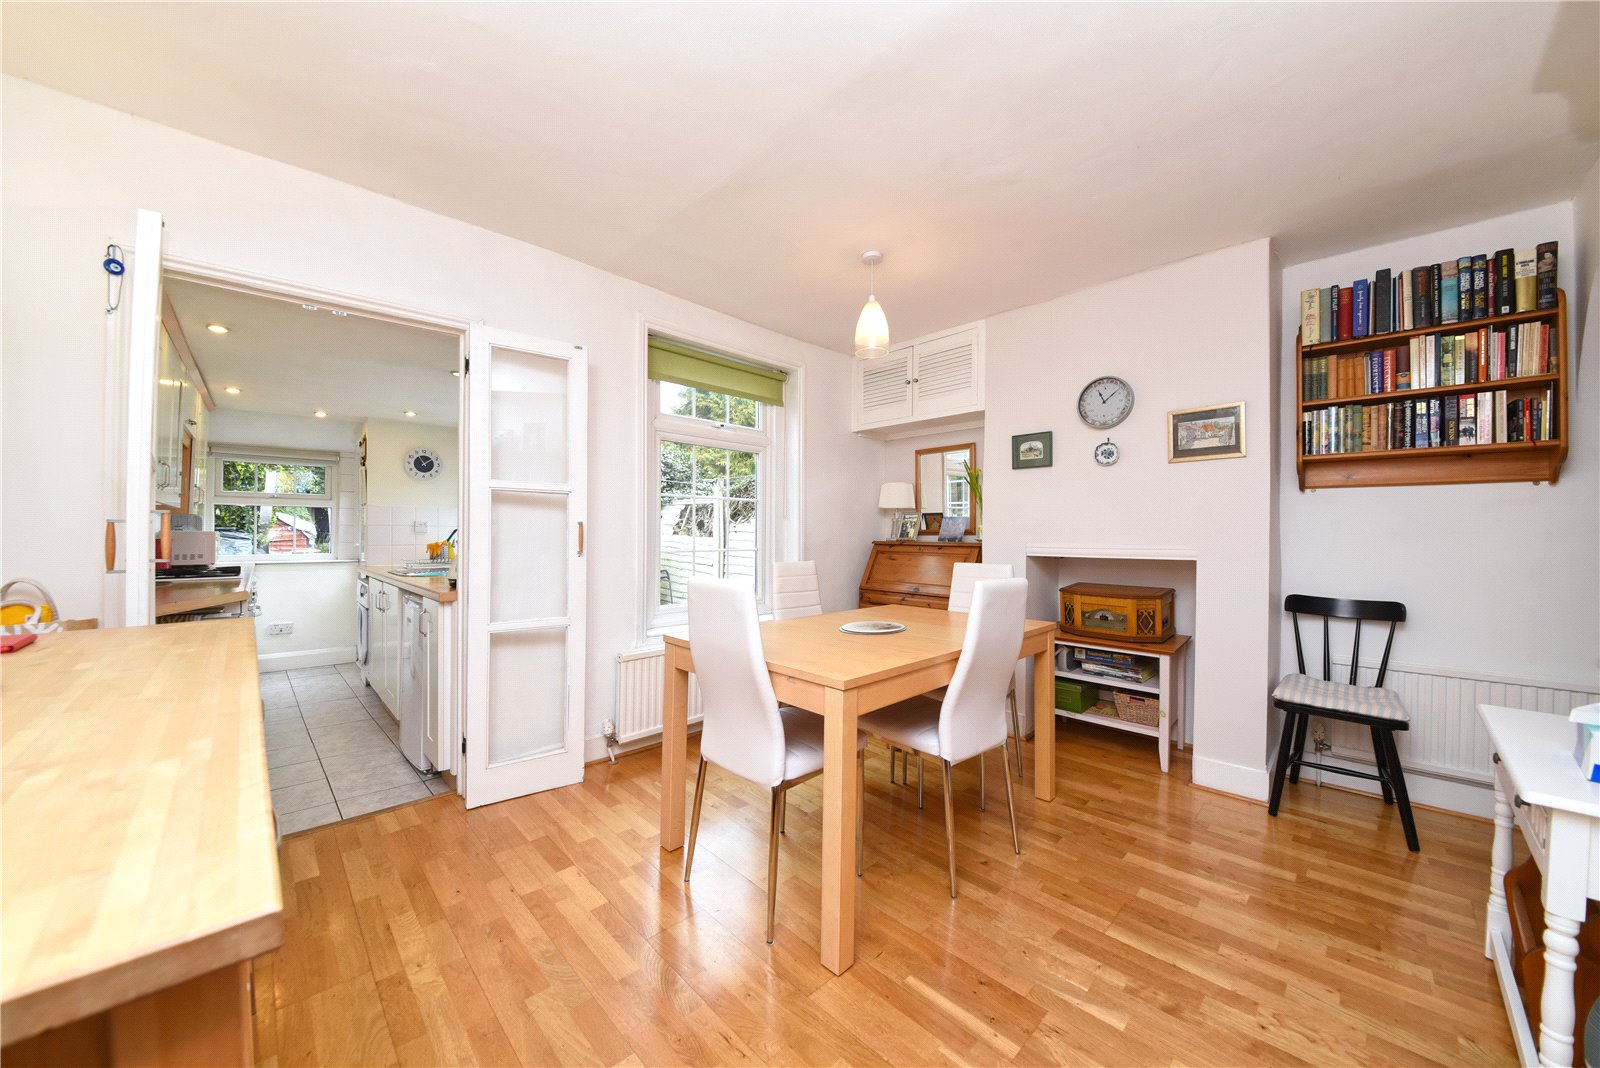 2 bed house for sale in London, N12 9JN - Property Image 1